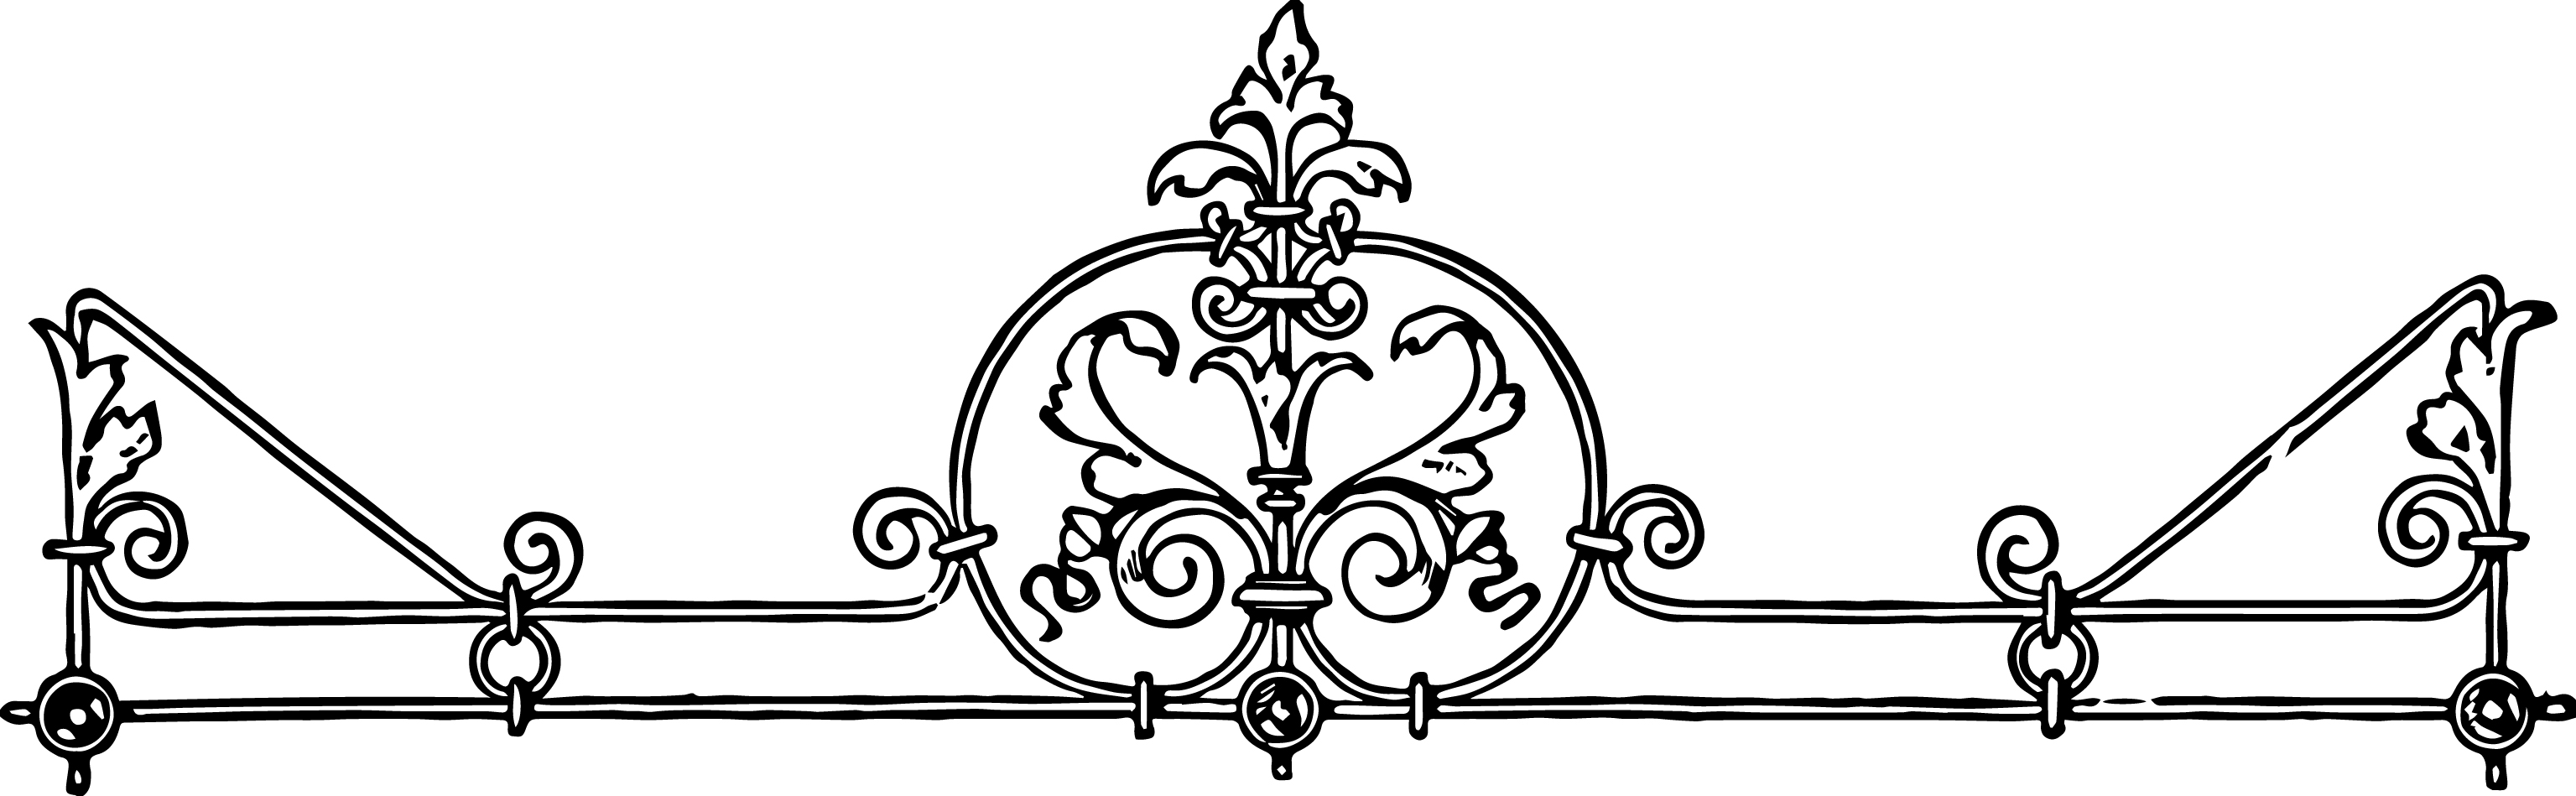 free stock vector vintage iron scrollwork oh so nifty vintage rh vintagegraphics ohsonifty com corner scrollwork clipart decorative scrollwork clipart